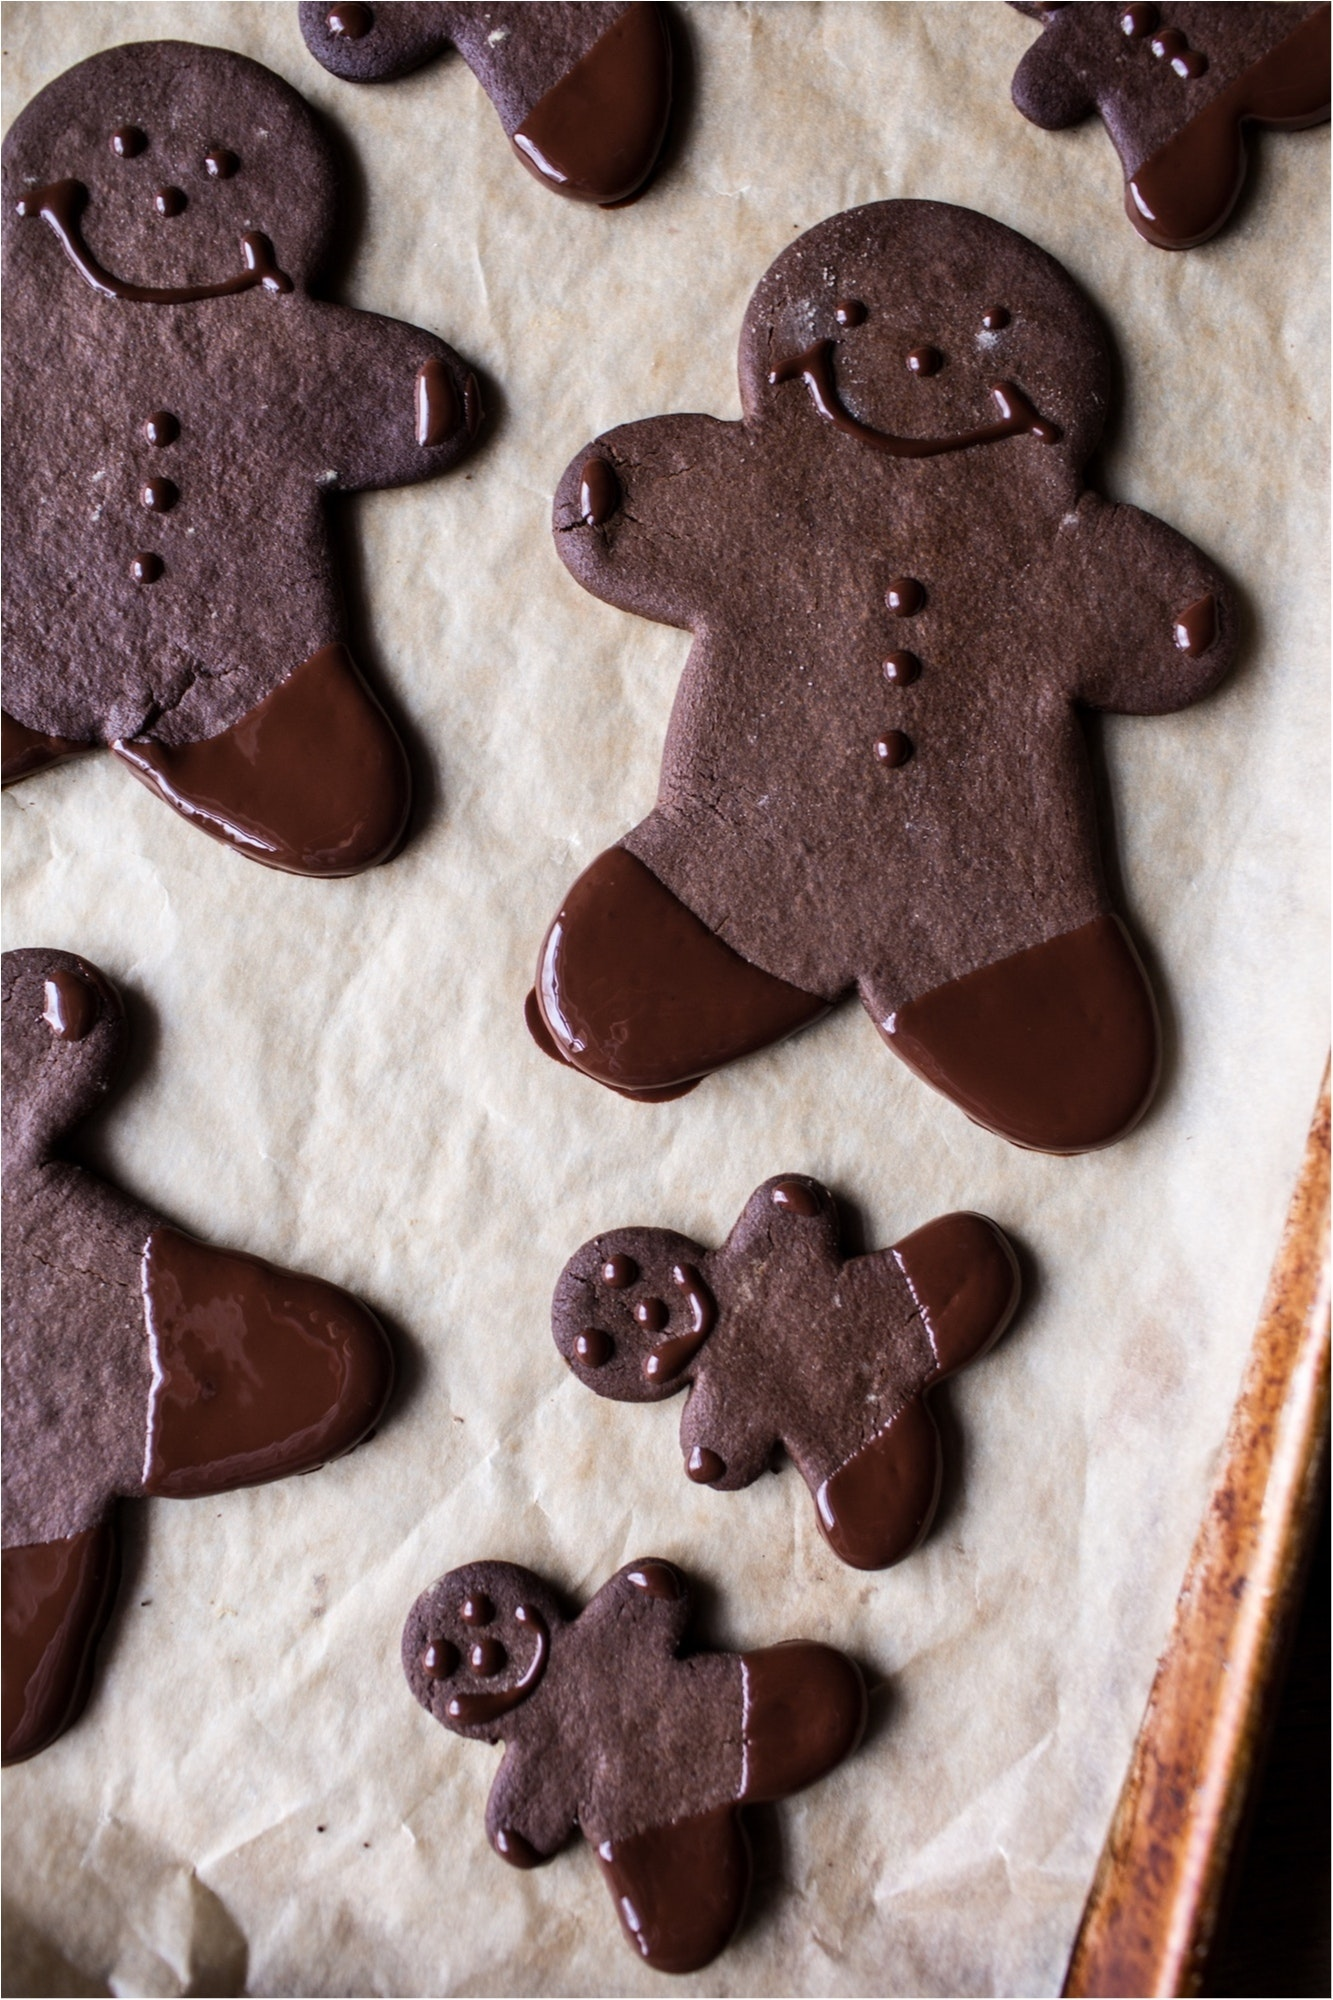 Chocolate-Dipped-Gingerbread-Cookies-with-Vanilla-Salt-5resize